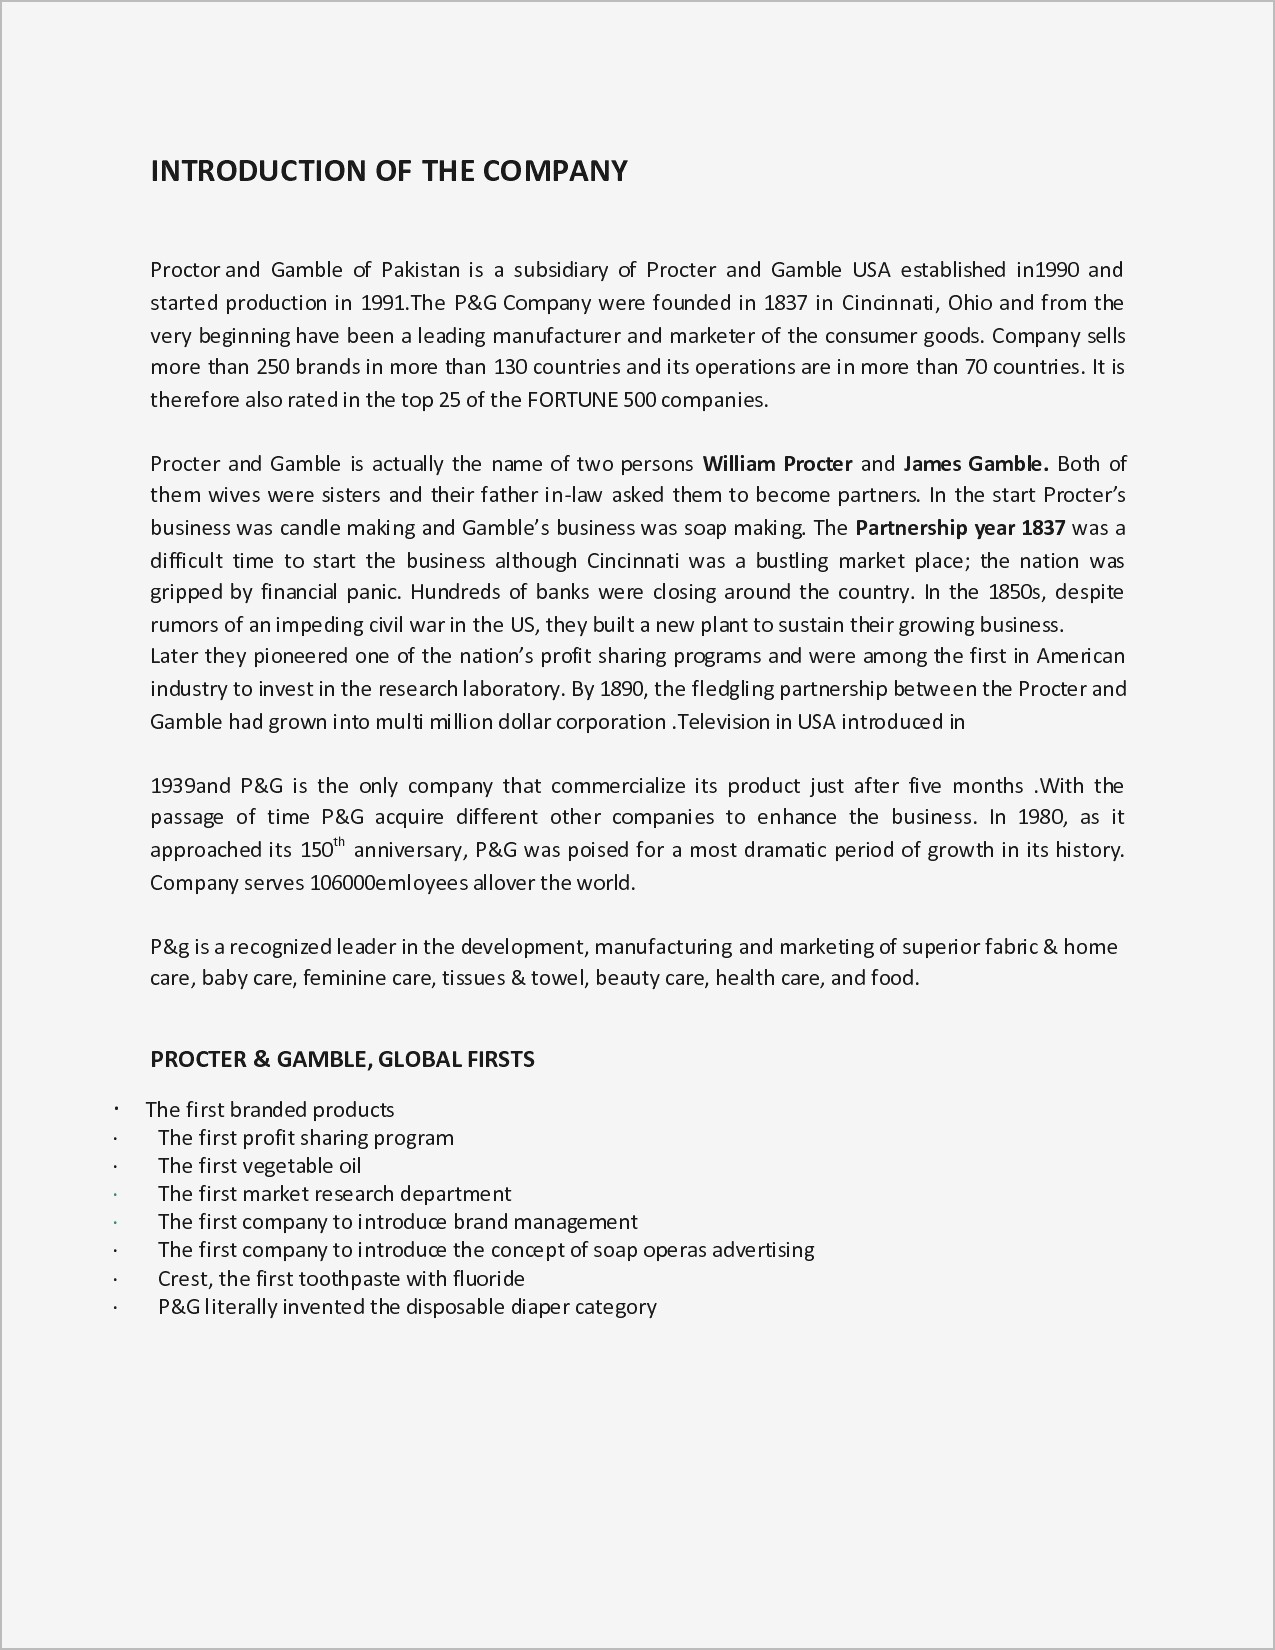 Public Health Cover Letter Template - Health Care Cover Letter Ideas